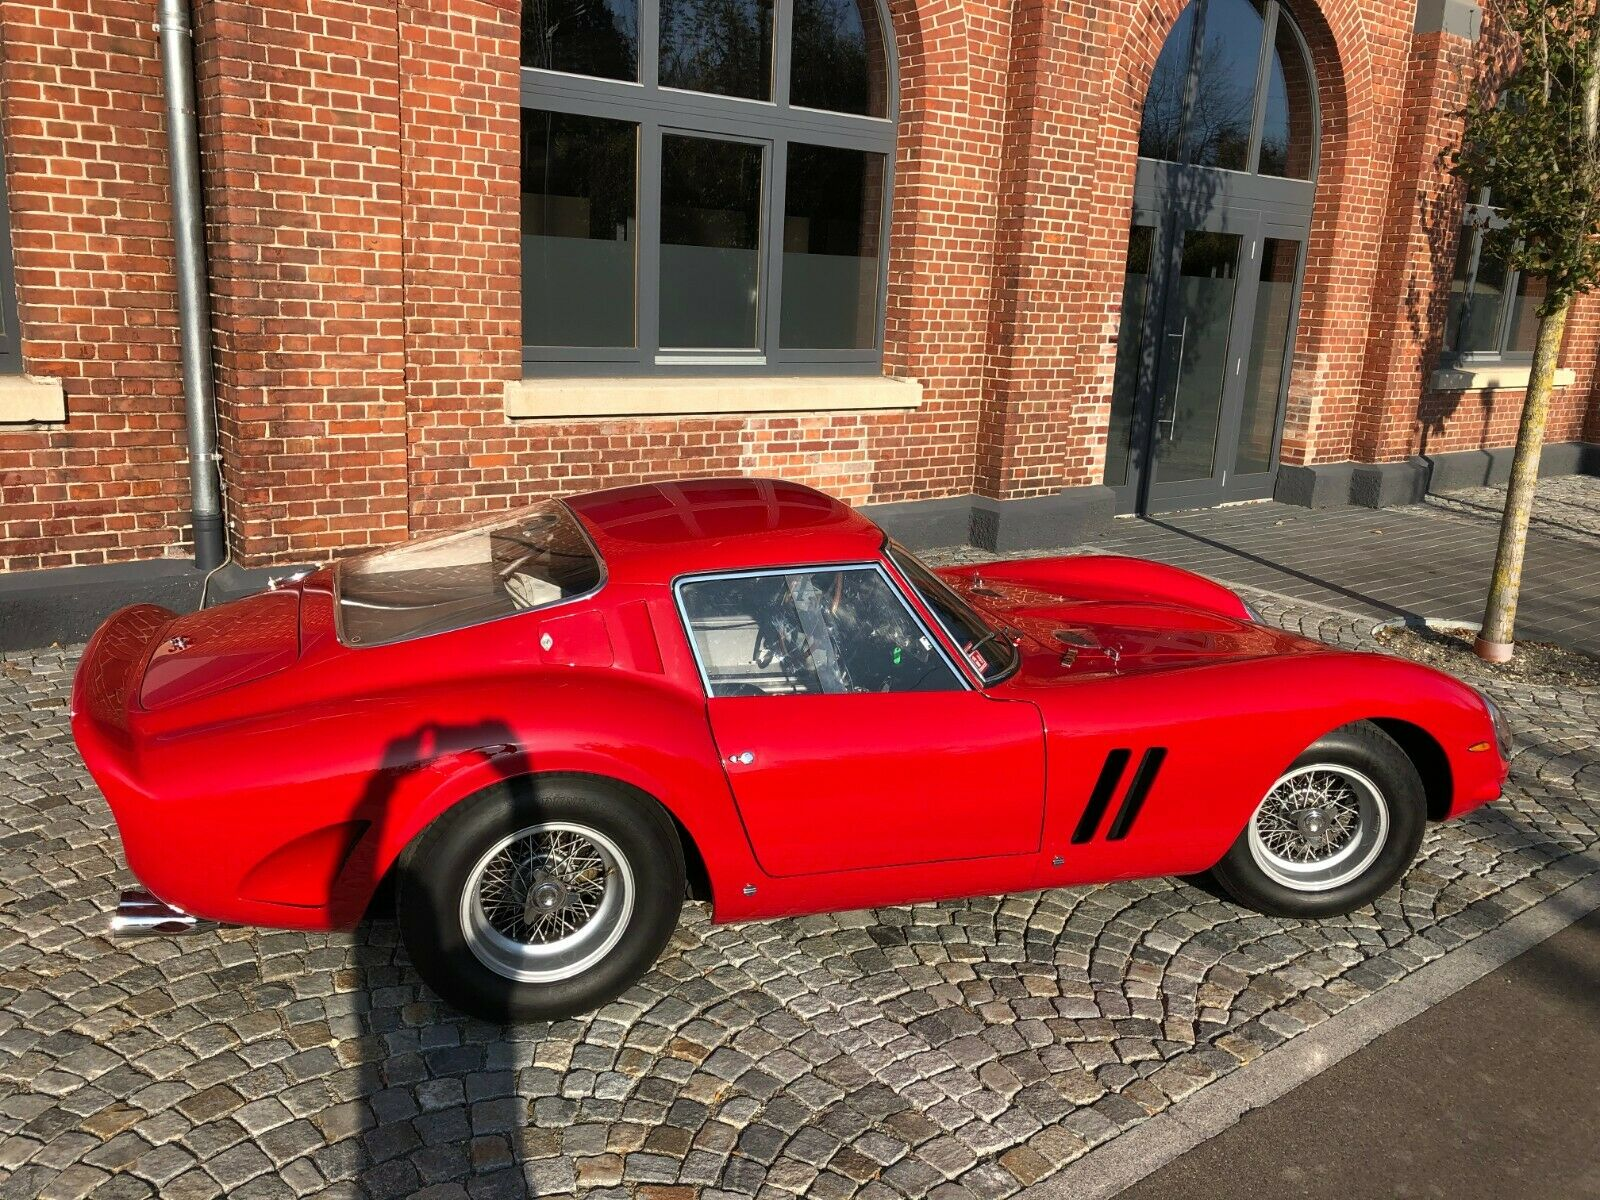 Million Dollar Baby: This Ferrari 250 GTE/GTO Reconstruction Is An Interesting Piece Of History